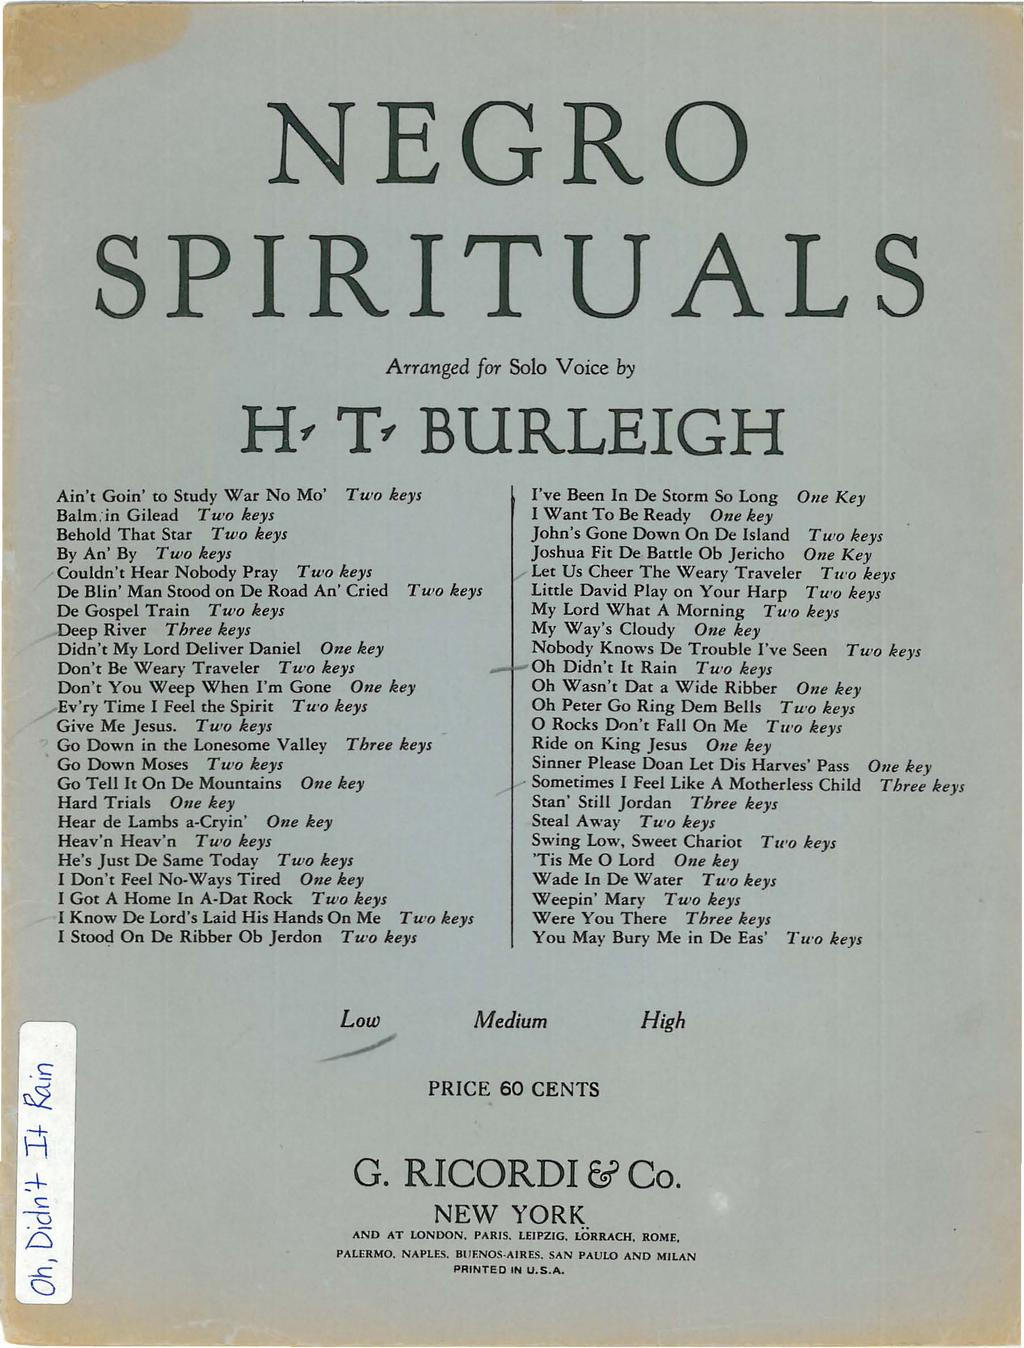 NEGRO SPRTUALS Arranged for Solo Voice by H T BURLEGH Ain't Goin' to Study War No Mo' Two keys Balmin Gilead Two keys Behold That Star Two keys By An' By Two keys Couldn't Hear Nobody Pray Two keys